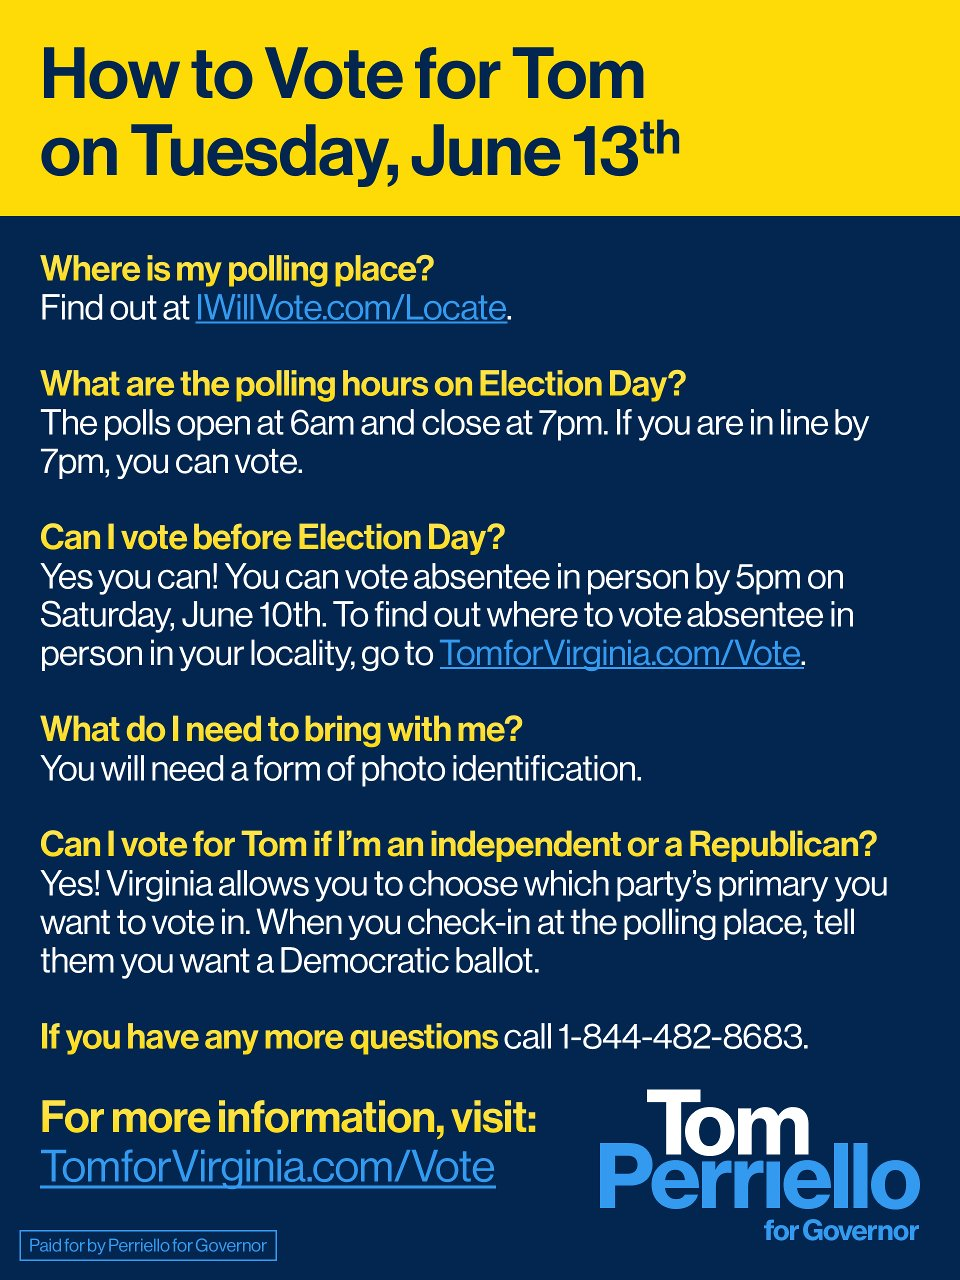 Here's how to vote in the Virginia primary this Tuesday, June 13th: https://t.co/ilxseS0UM7